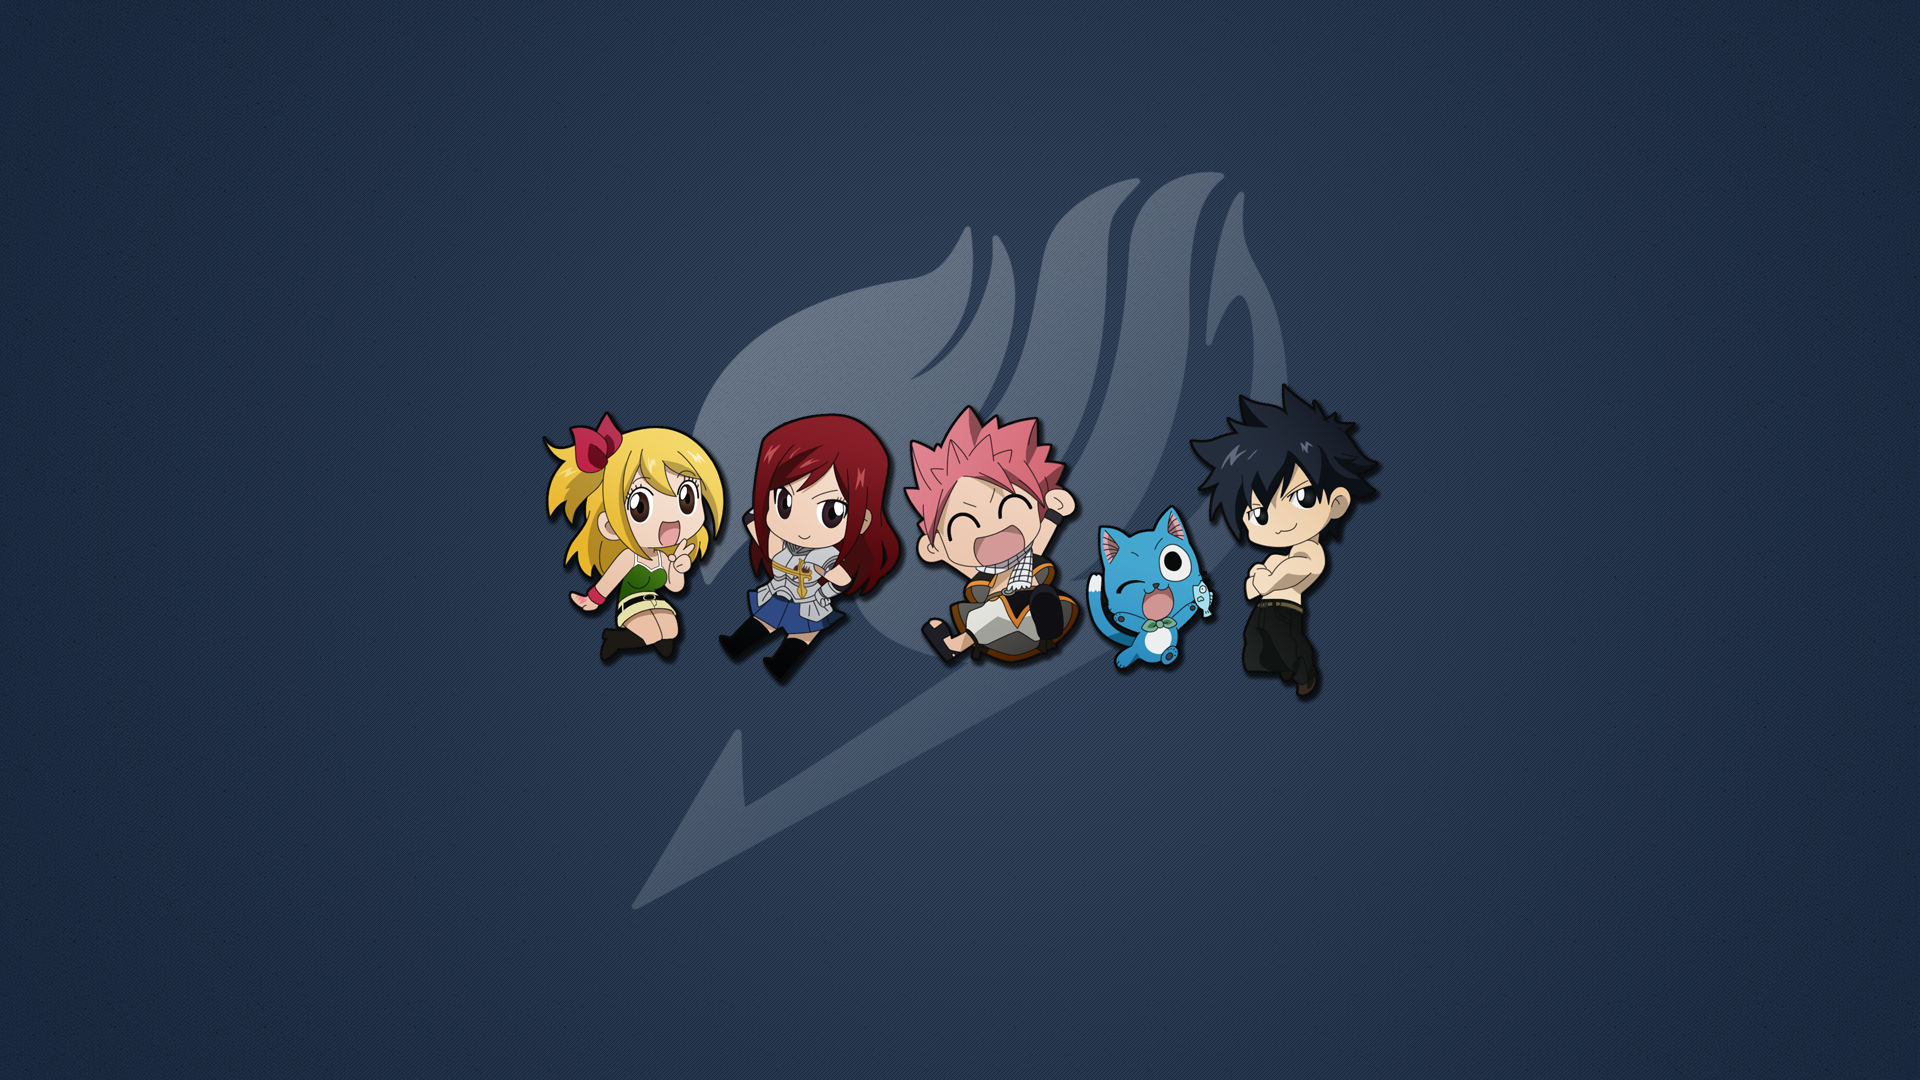 Fairy Tail wallpaper by LordMycelium 1920x1080